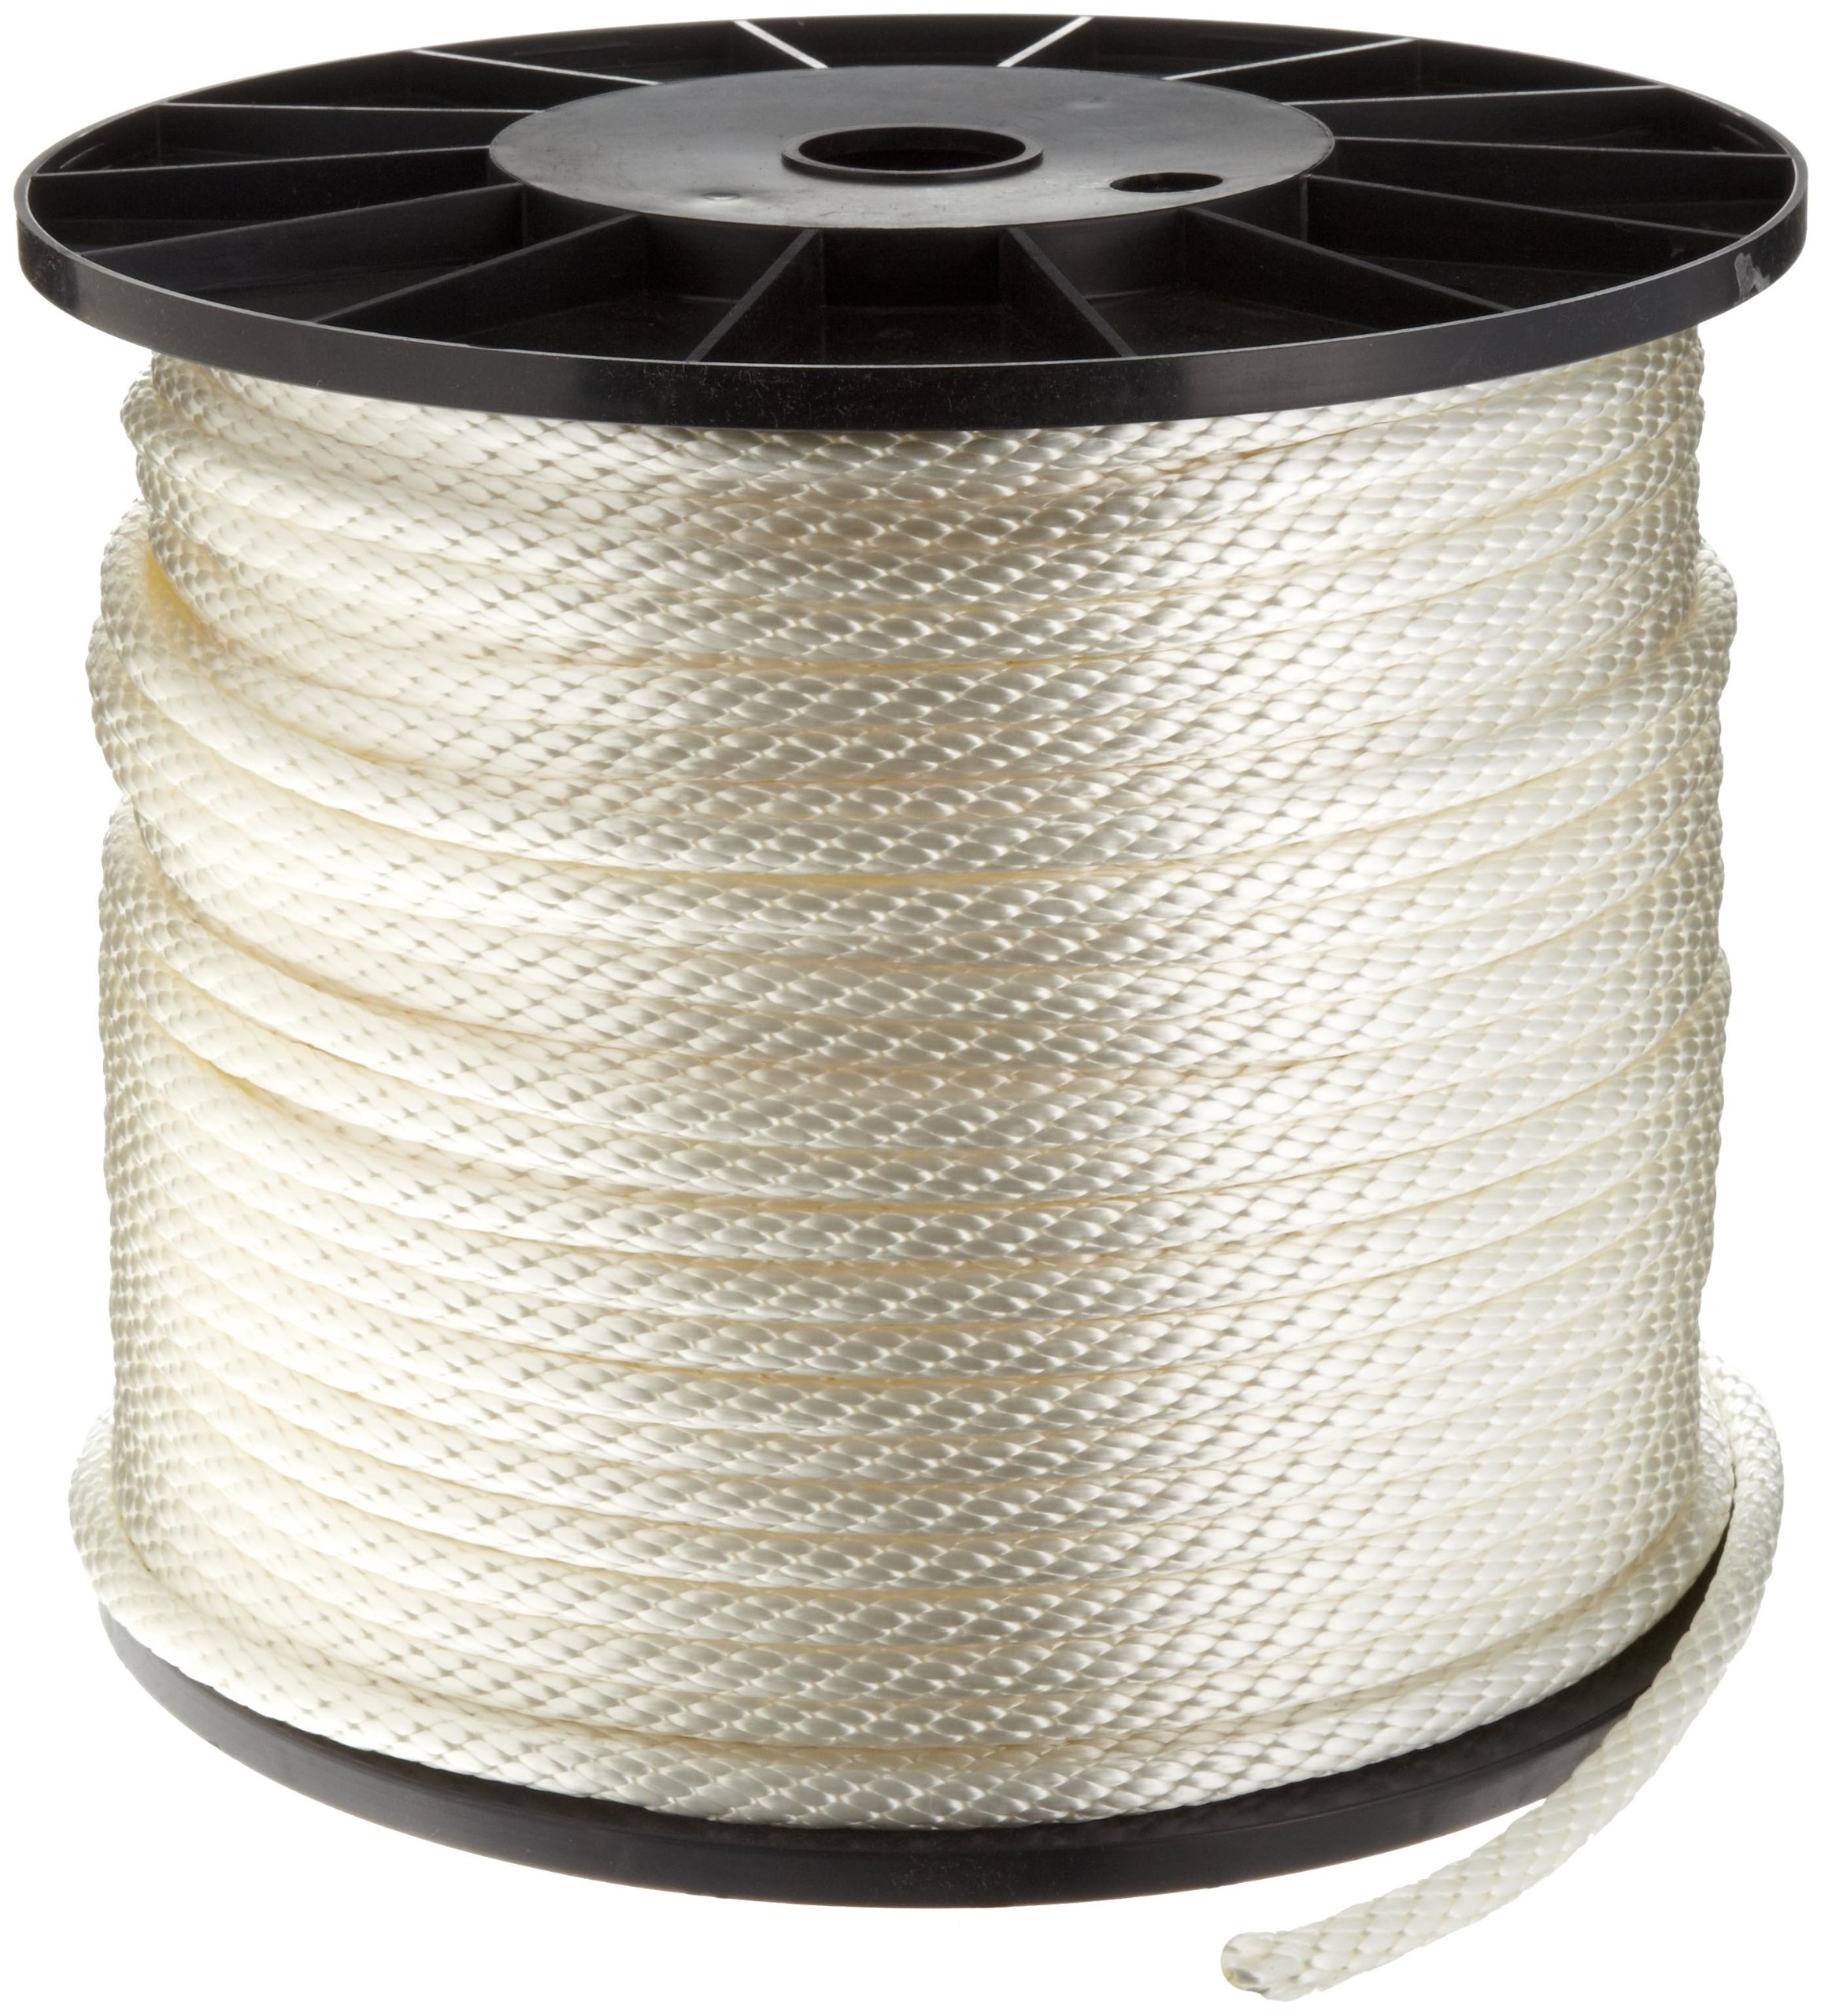 Samson Rope 019024005030 Solid Braid Nylon Cord in Spool, 3/8'' Diameter, 500' Length, 2500 lbs Strength, 375 lbs Working Load Limit